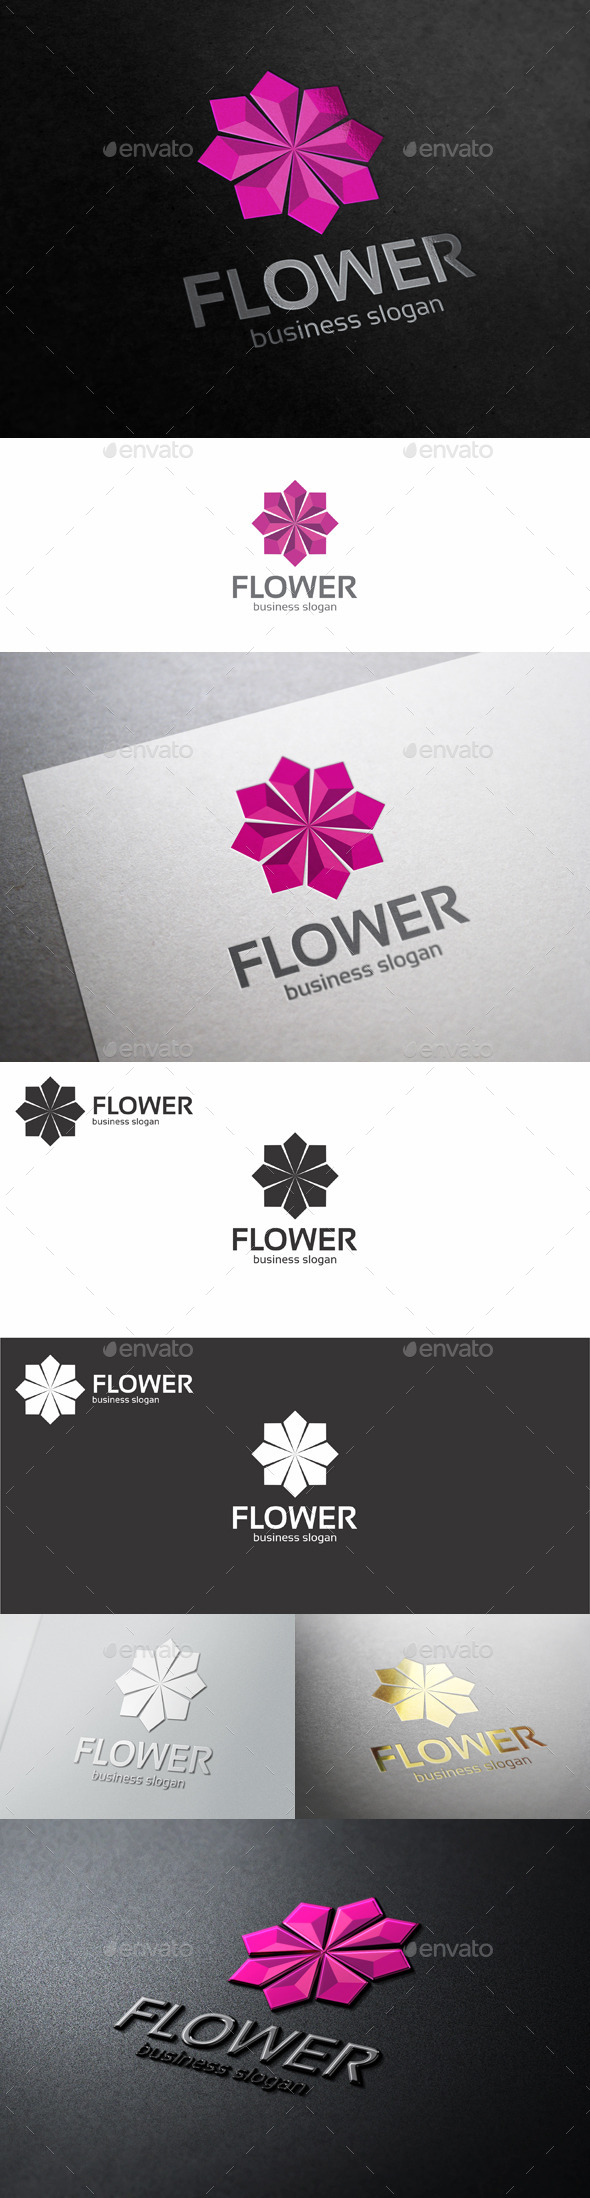 GraphicRiver Flower Jewelry Corporate Business Logo 10131262